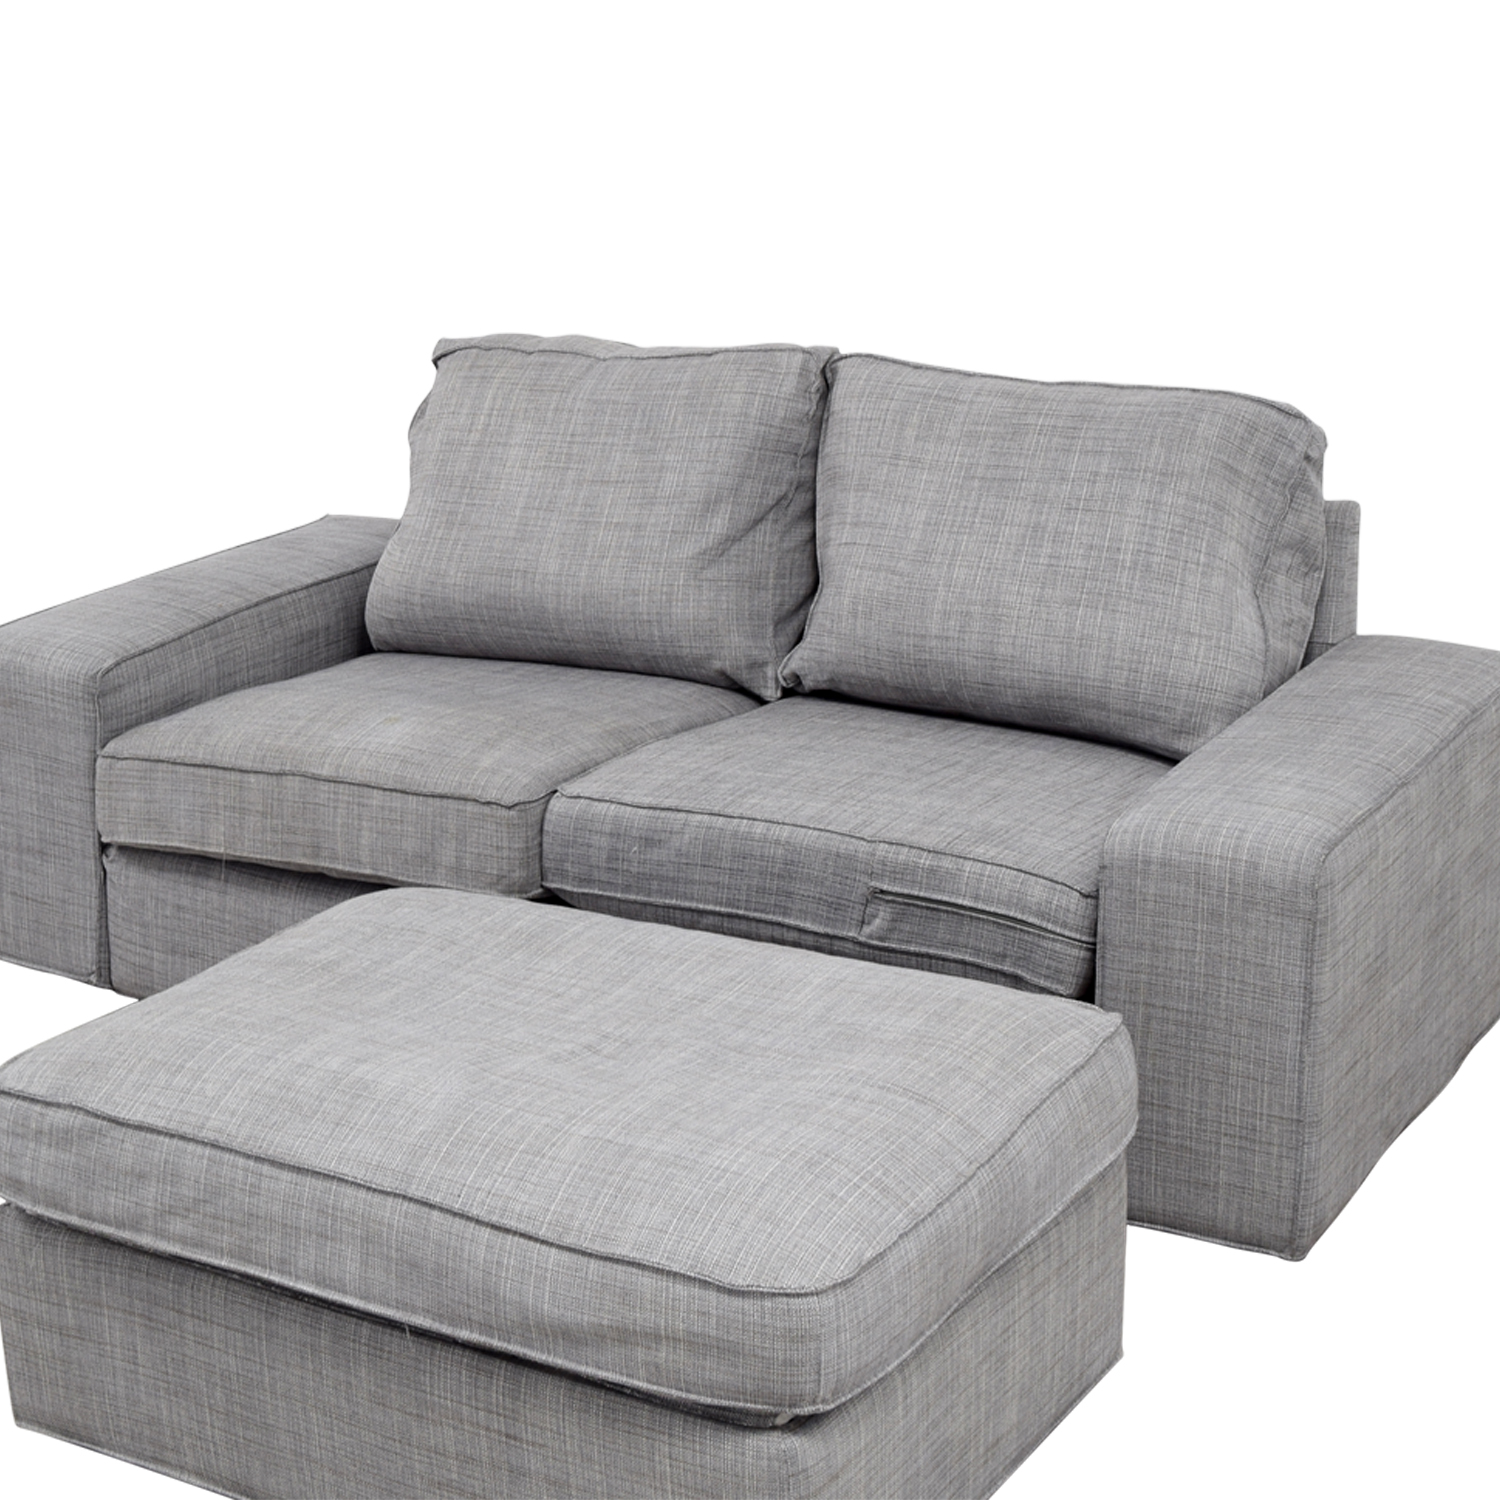 64 off ikea ikea kivik gray sofa and ottoman sofas for Ikea gray sofa